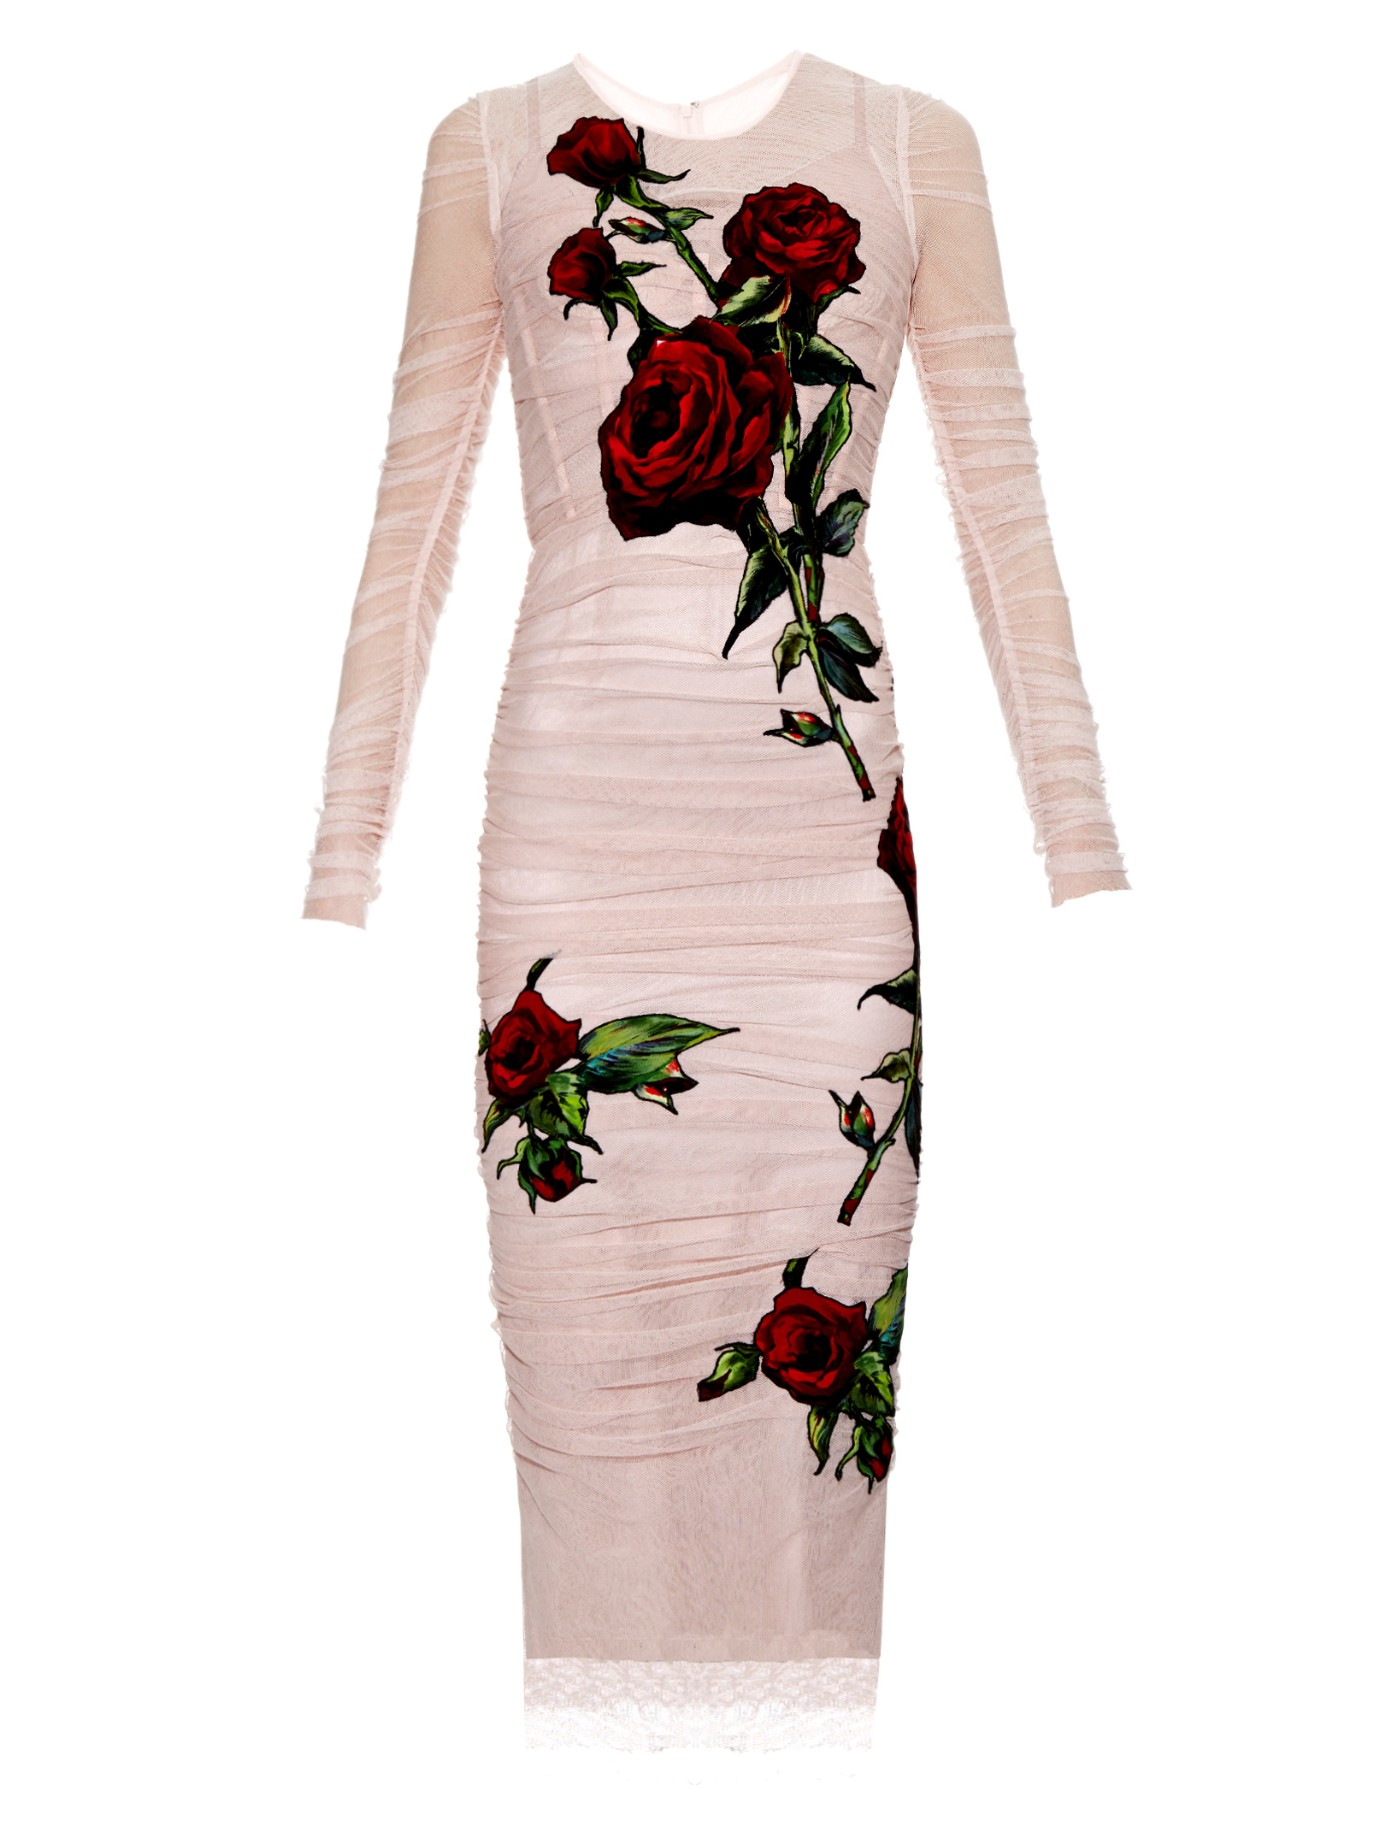 39349bfa03c Dolce & Gabbana Rose-embroidered Tulle Dress in Pink - Lyst